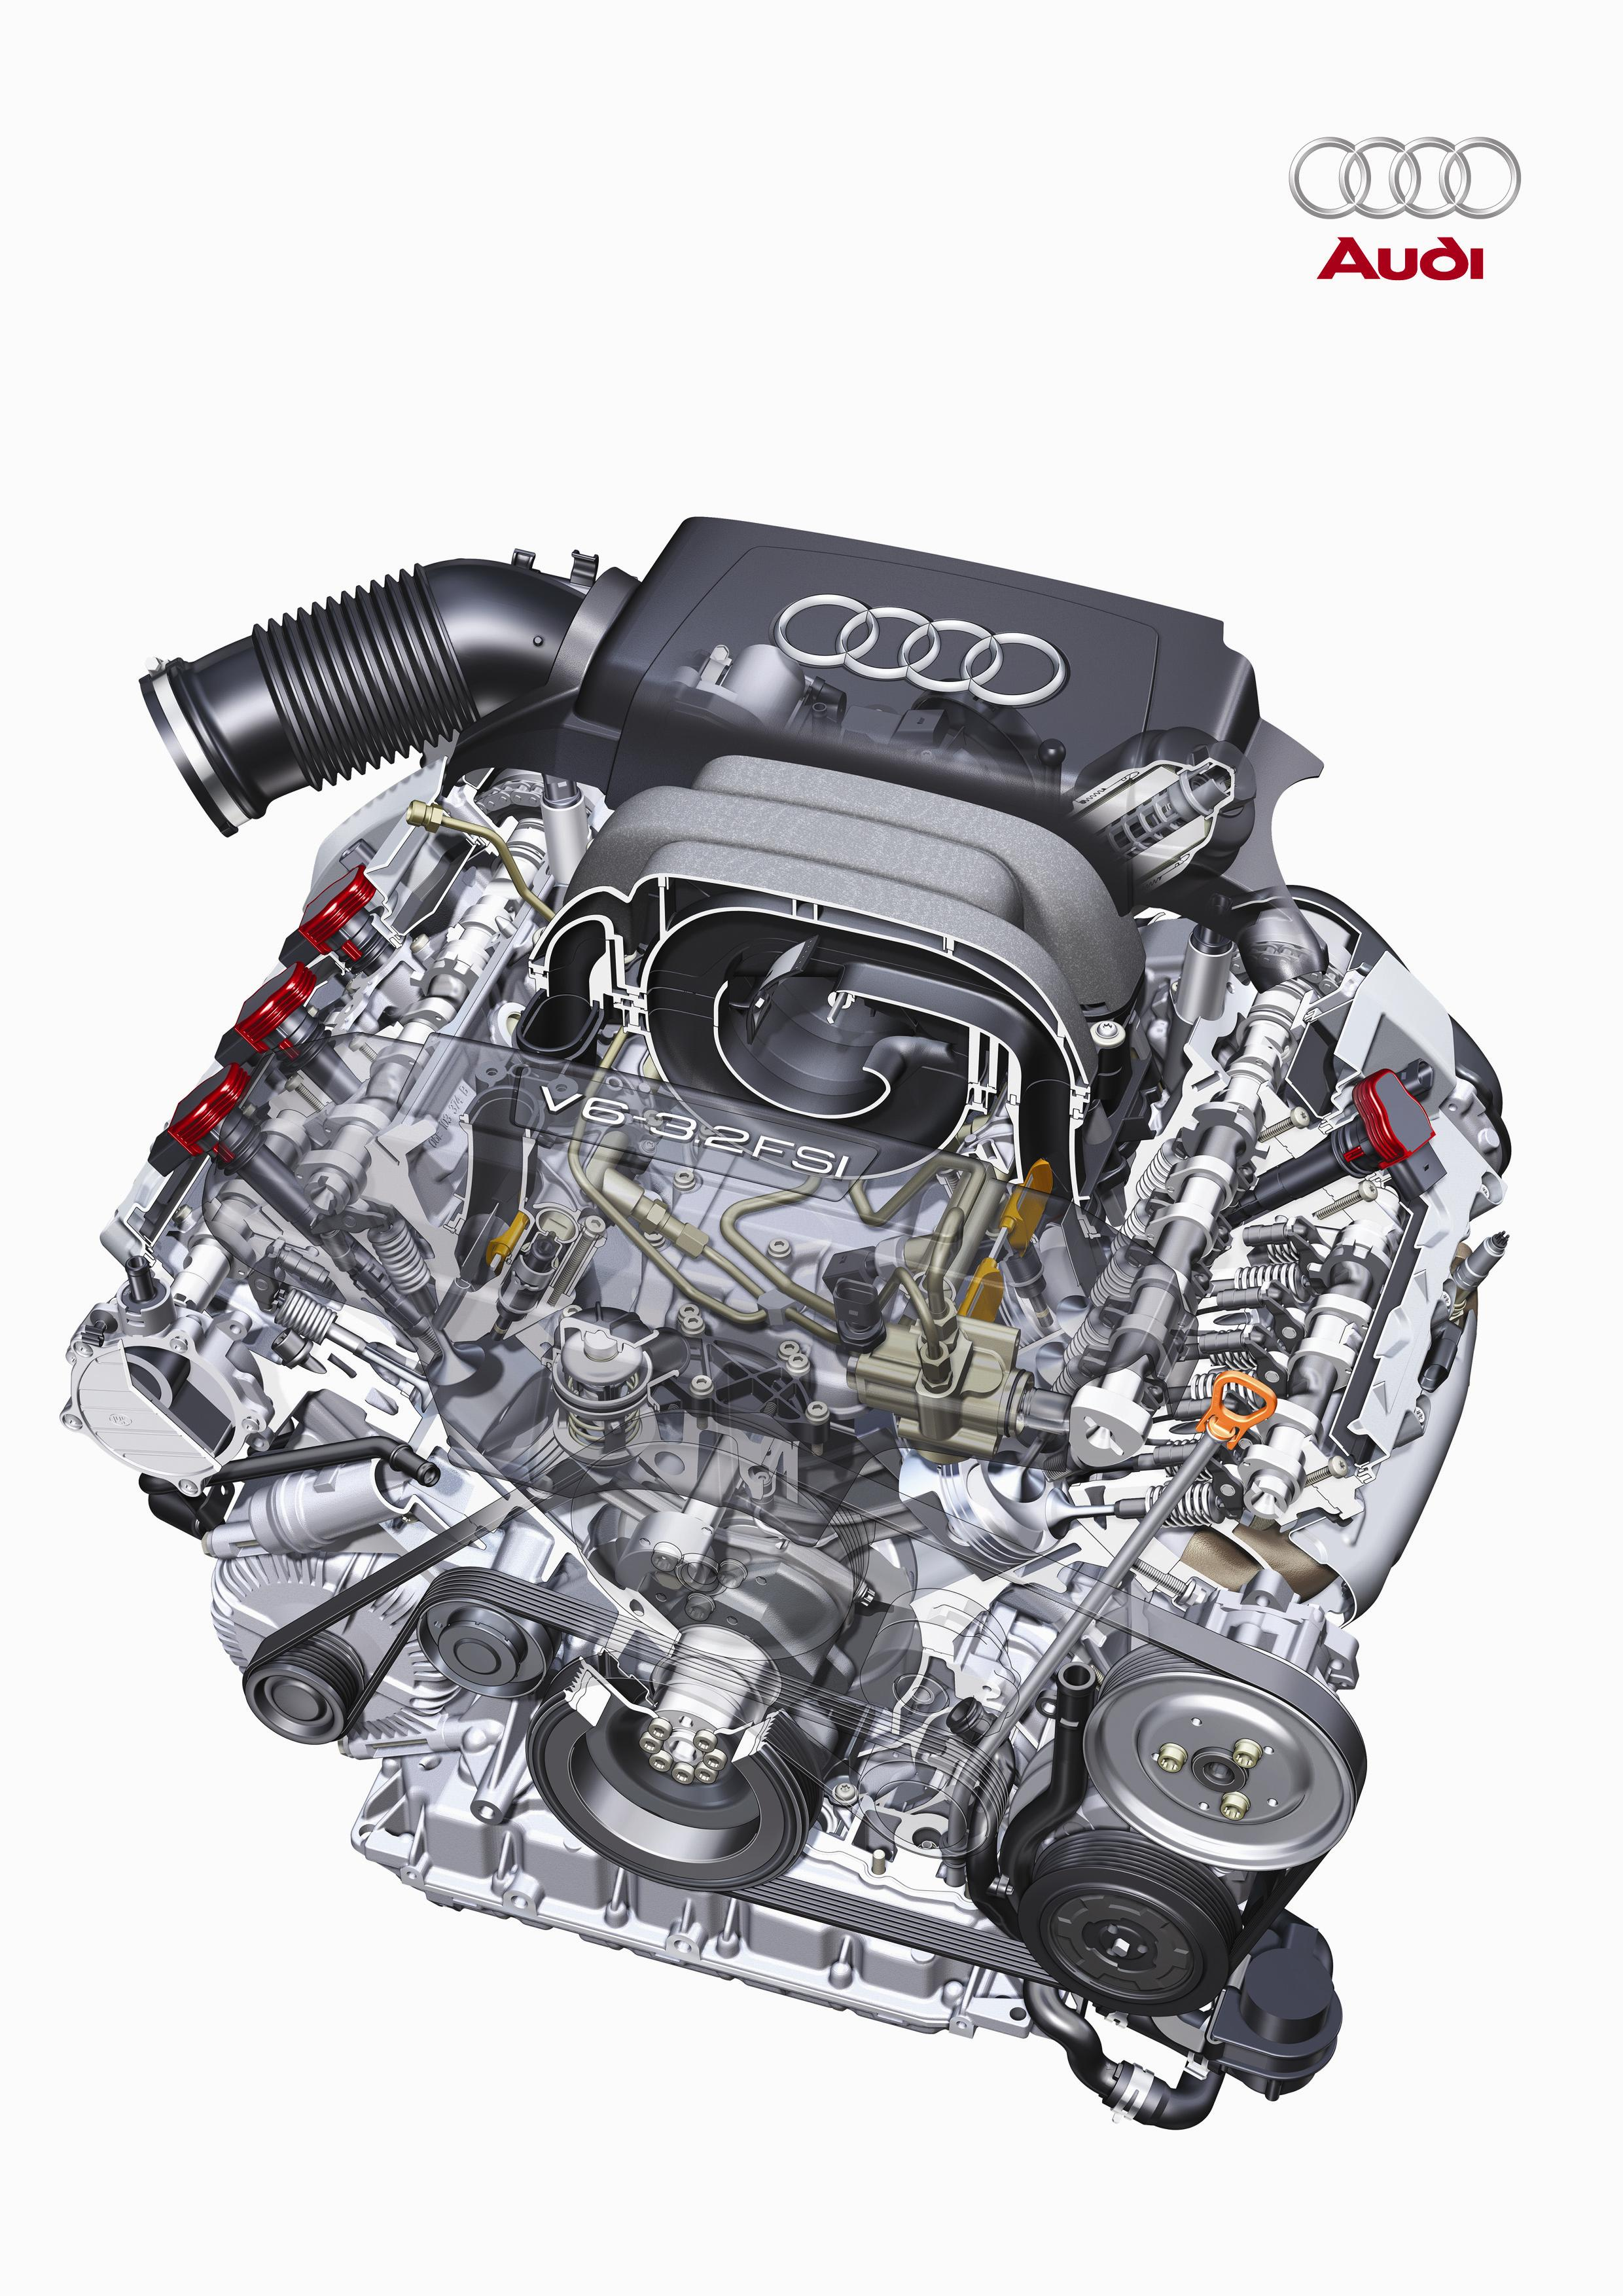 Audi A6 30 Engine Diagram Trusted Wiring 2000 2007 Sedan Top Speed